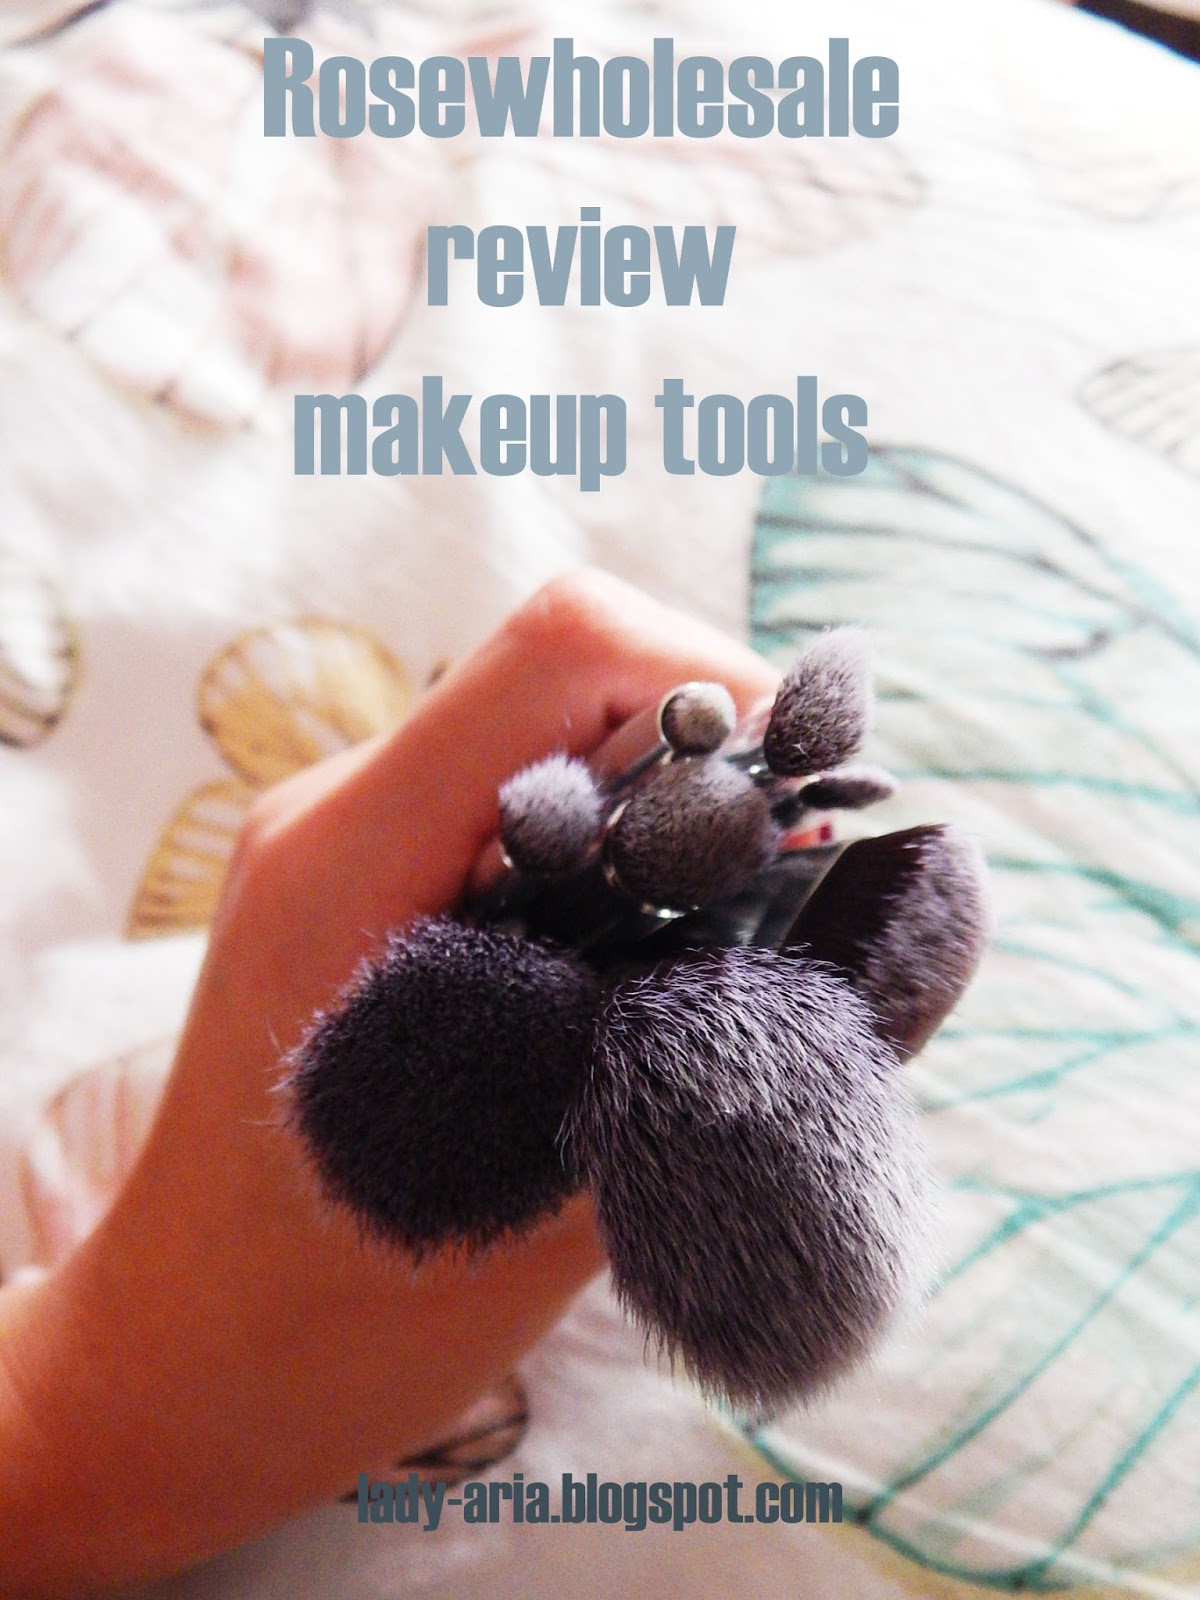 ROSEWHOLESALE Review - makeup accesories!